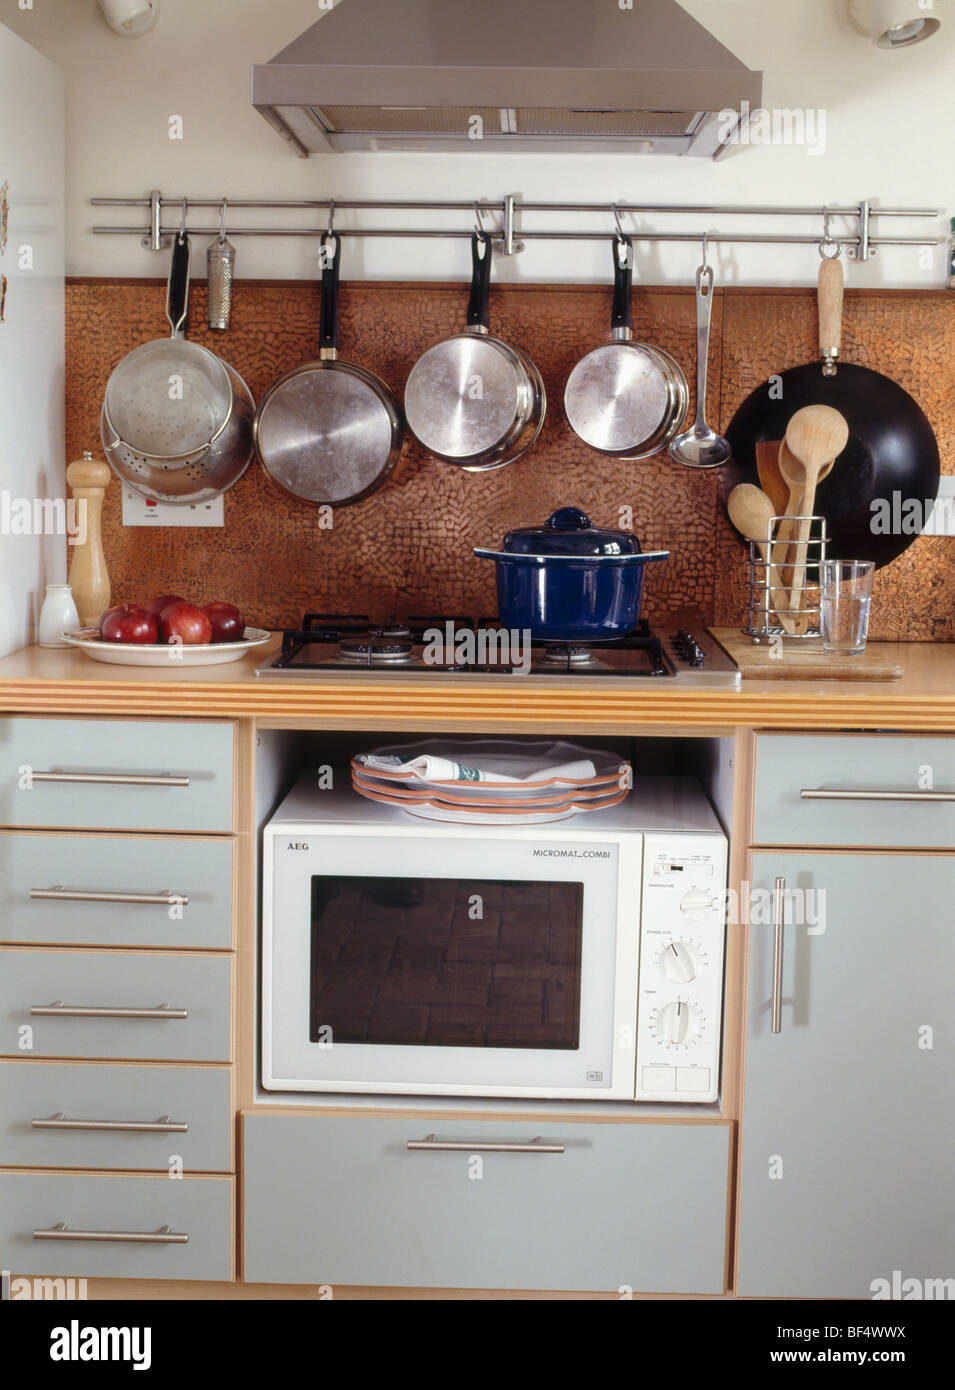 How To Pack Small Kitchen Appliances